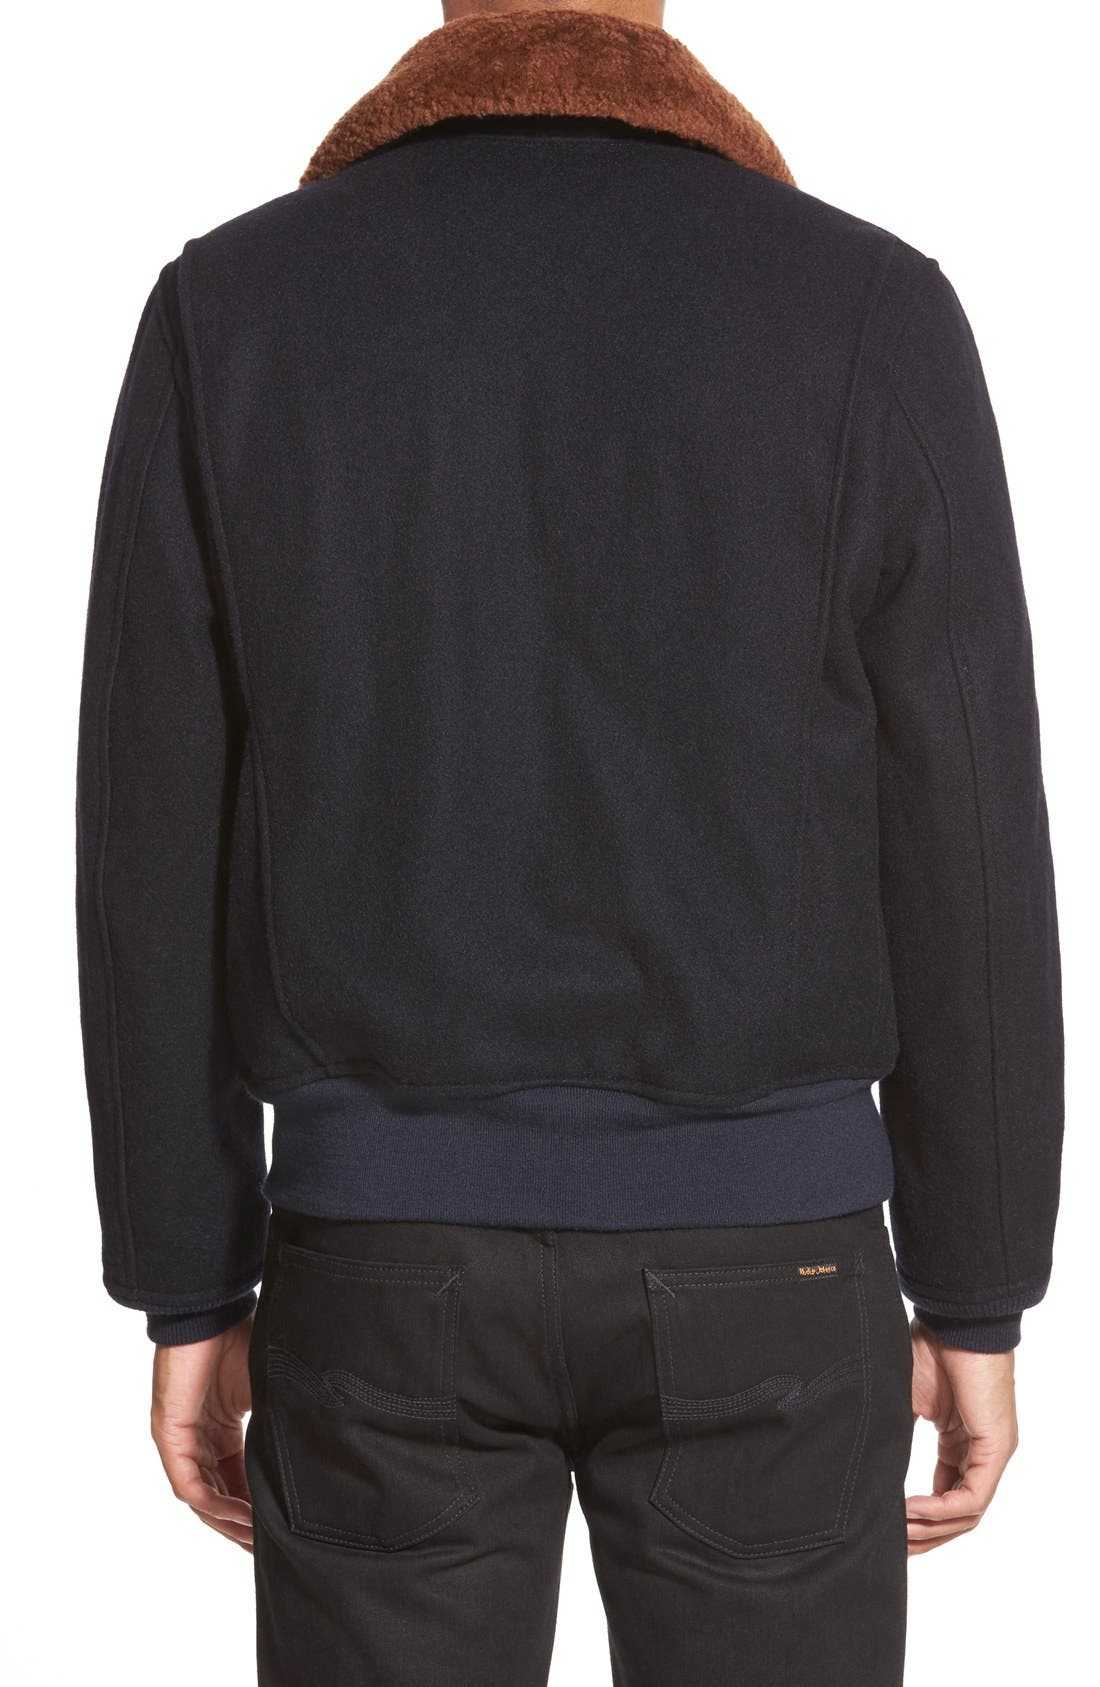 SchottNYC'G-1' Zip Front Bomber with Genuine Shearling Collar,                             Alternate thumbnail 8, color,                             410